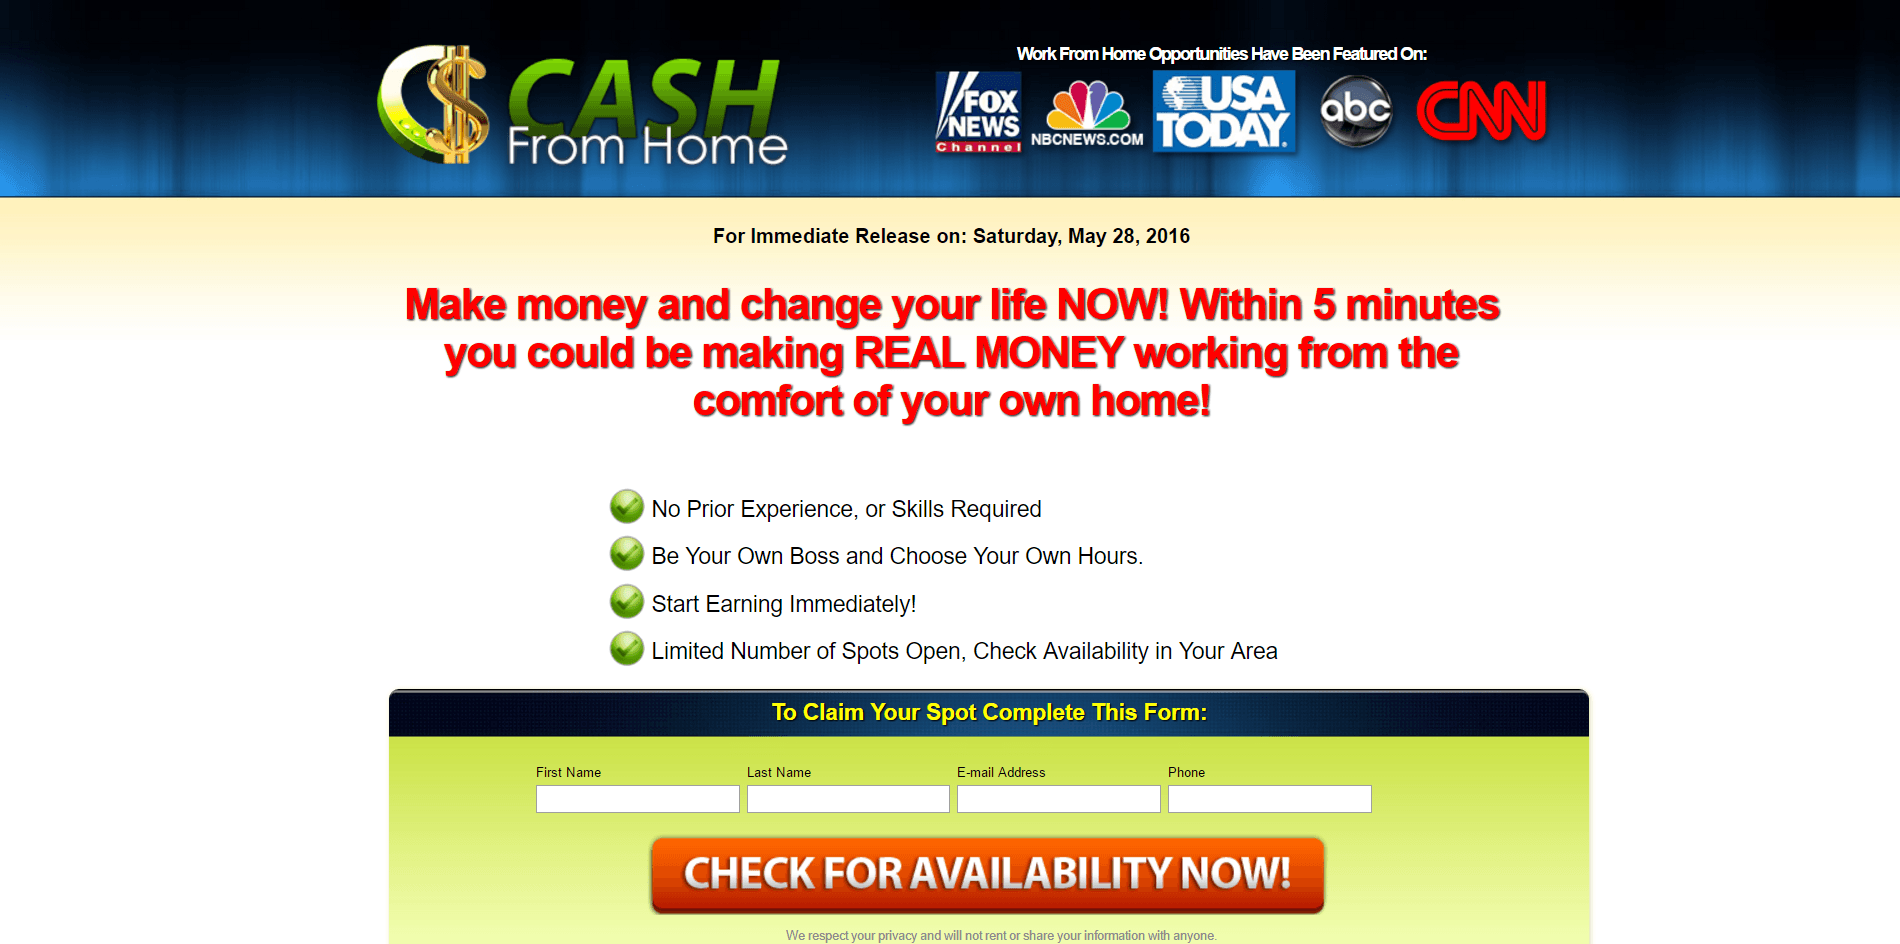 Do you know of any legit scam-free work @ home opportunities for people with disabilities?